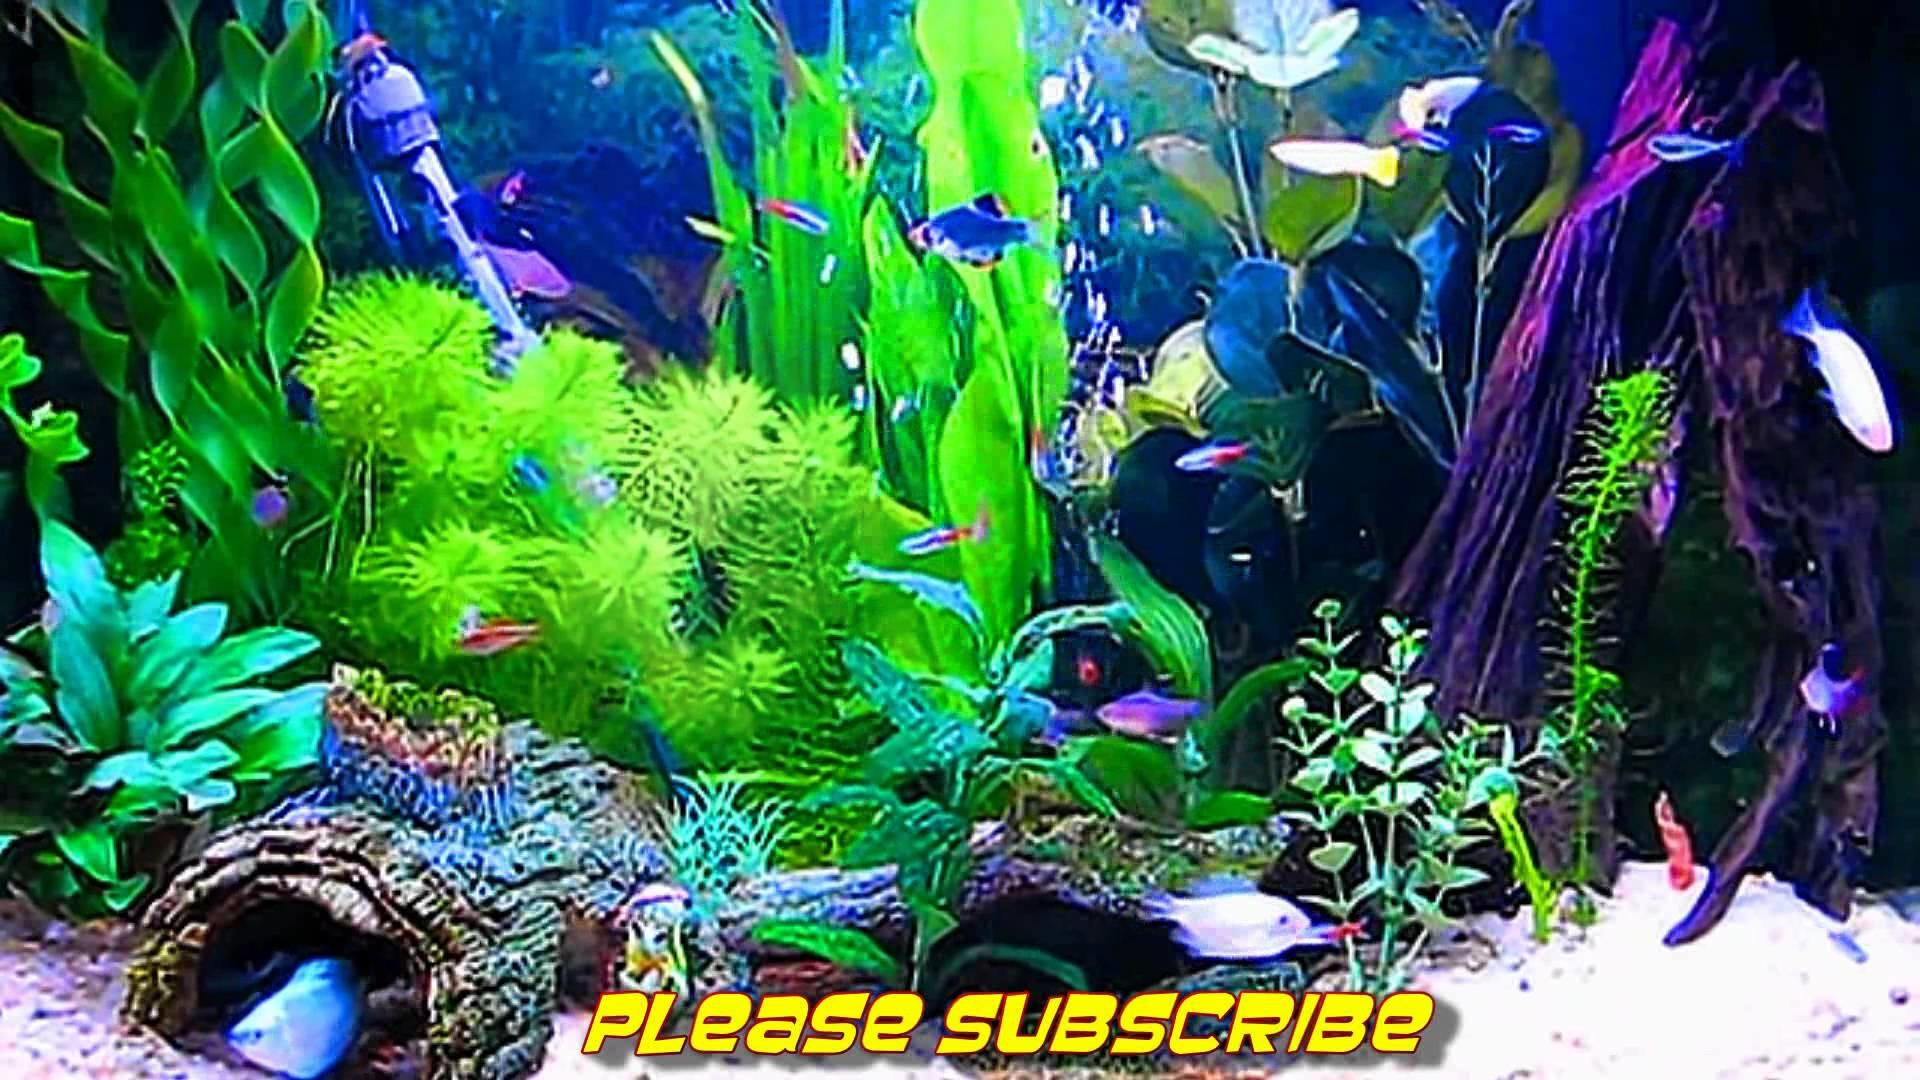 1920x1080 Download Live Aquarium Wallpaper For Mobile Gallery | Free Wallpapers | Pinterest | Wallpaper and Wallpaper gallery. Download